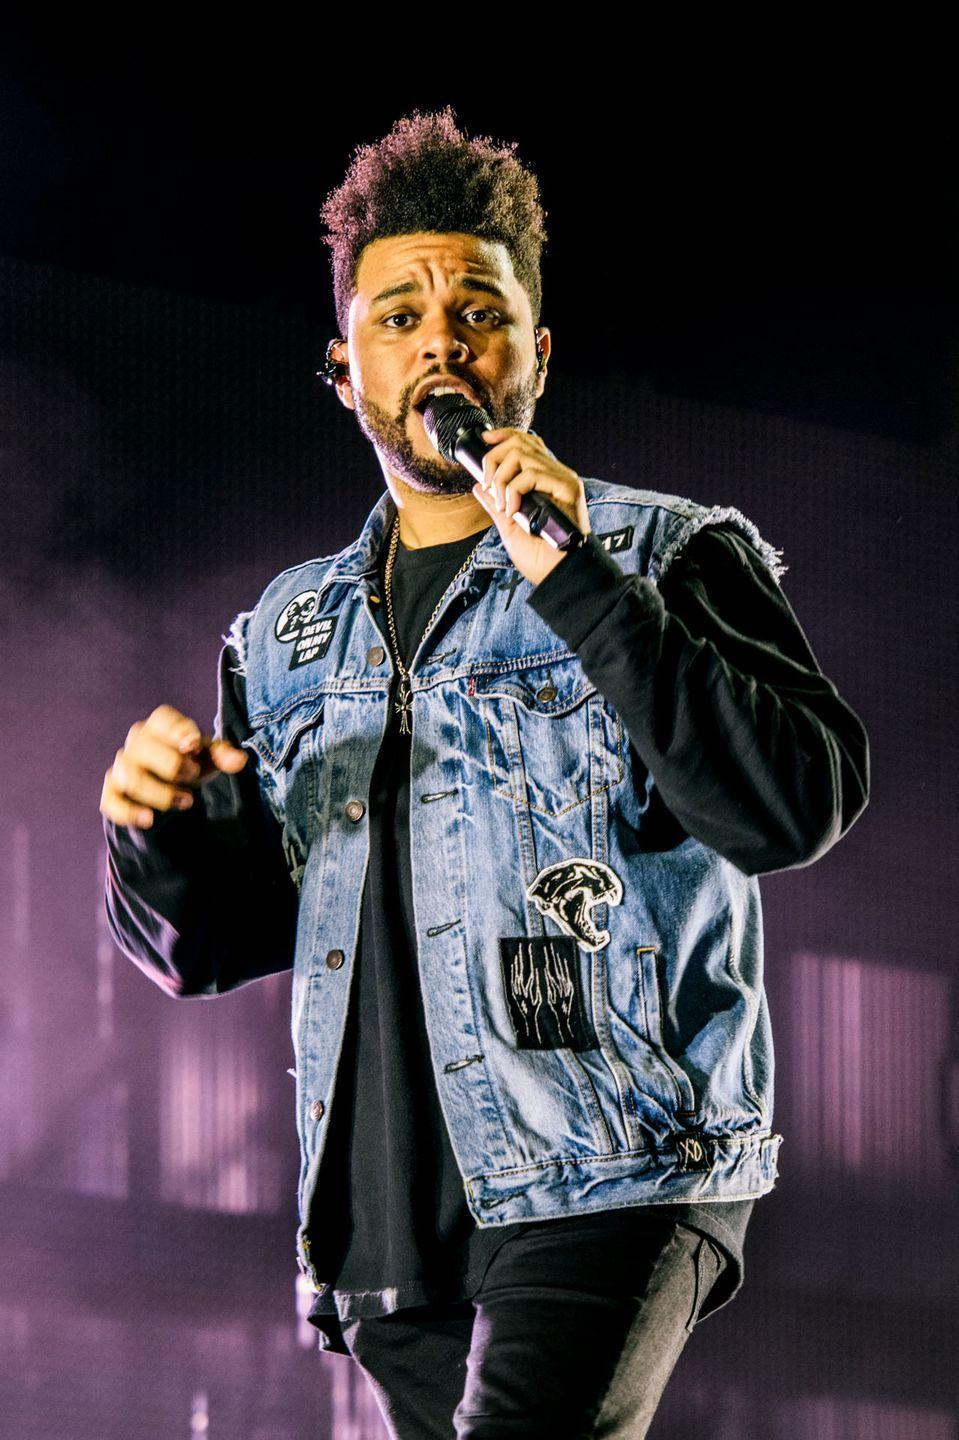 "<p><strong>Born</strong>: Abel Makkonen Tesfaye<strong><br></strong></p><p>It probably goes without saying that The Weeknd's first name is not ""The,"" and his last name not ""Weeknd."" The singer was born as Abel Makkonen Tesfaye. </p><p>He revealed during a <a href=""http://www.mtv.com/news/1714103/the-weeknd-reddit-ama/"" rel=""nofollow noopener"" target=""_blank"" data-ylk=""slk:Reddit Ask Me Anything"" class=""link rapid-noclick-resp"">Reddit Ask Me Anything</a> that he chose his stage name after leaving home as a teenager. ""I left home when I was about 17 dropped out of high school and convinced Lamar to do the same lol,"" he said, referring to a member of his crew. ""We grabbed our mattresses from our parents threw it in our friends shitty van and left one weekend and never came back home. It was gonna be the title of HOB [<em>House of Balloons</em>]. I hated my name at the time though so I tried it as a stage name. It sounded cool. I took out the ""e"" because there was already a Canadian band named the weekend (copyright issues).""</p>"